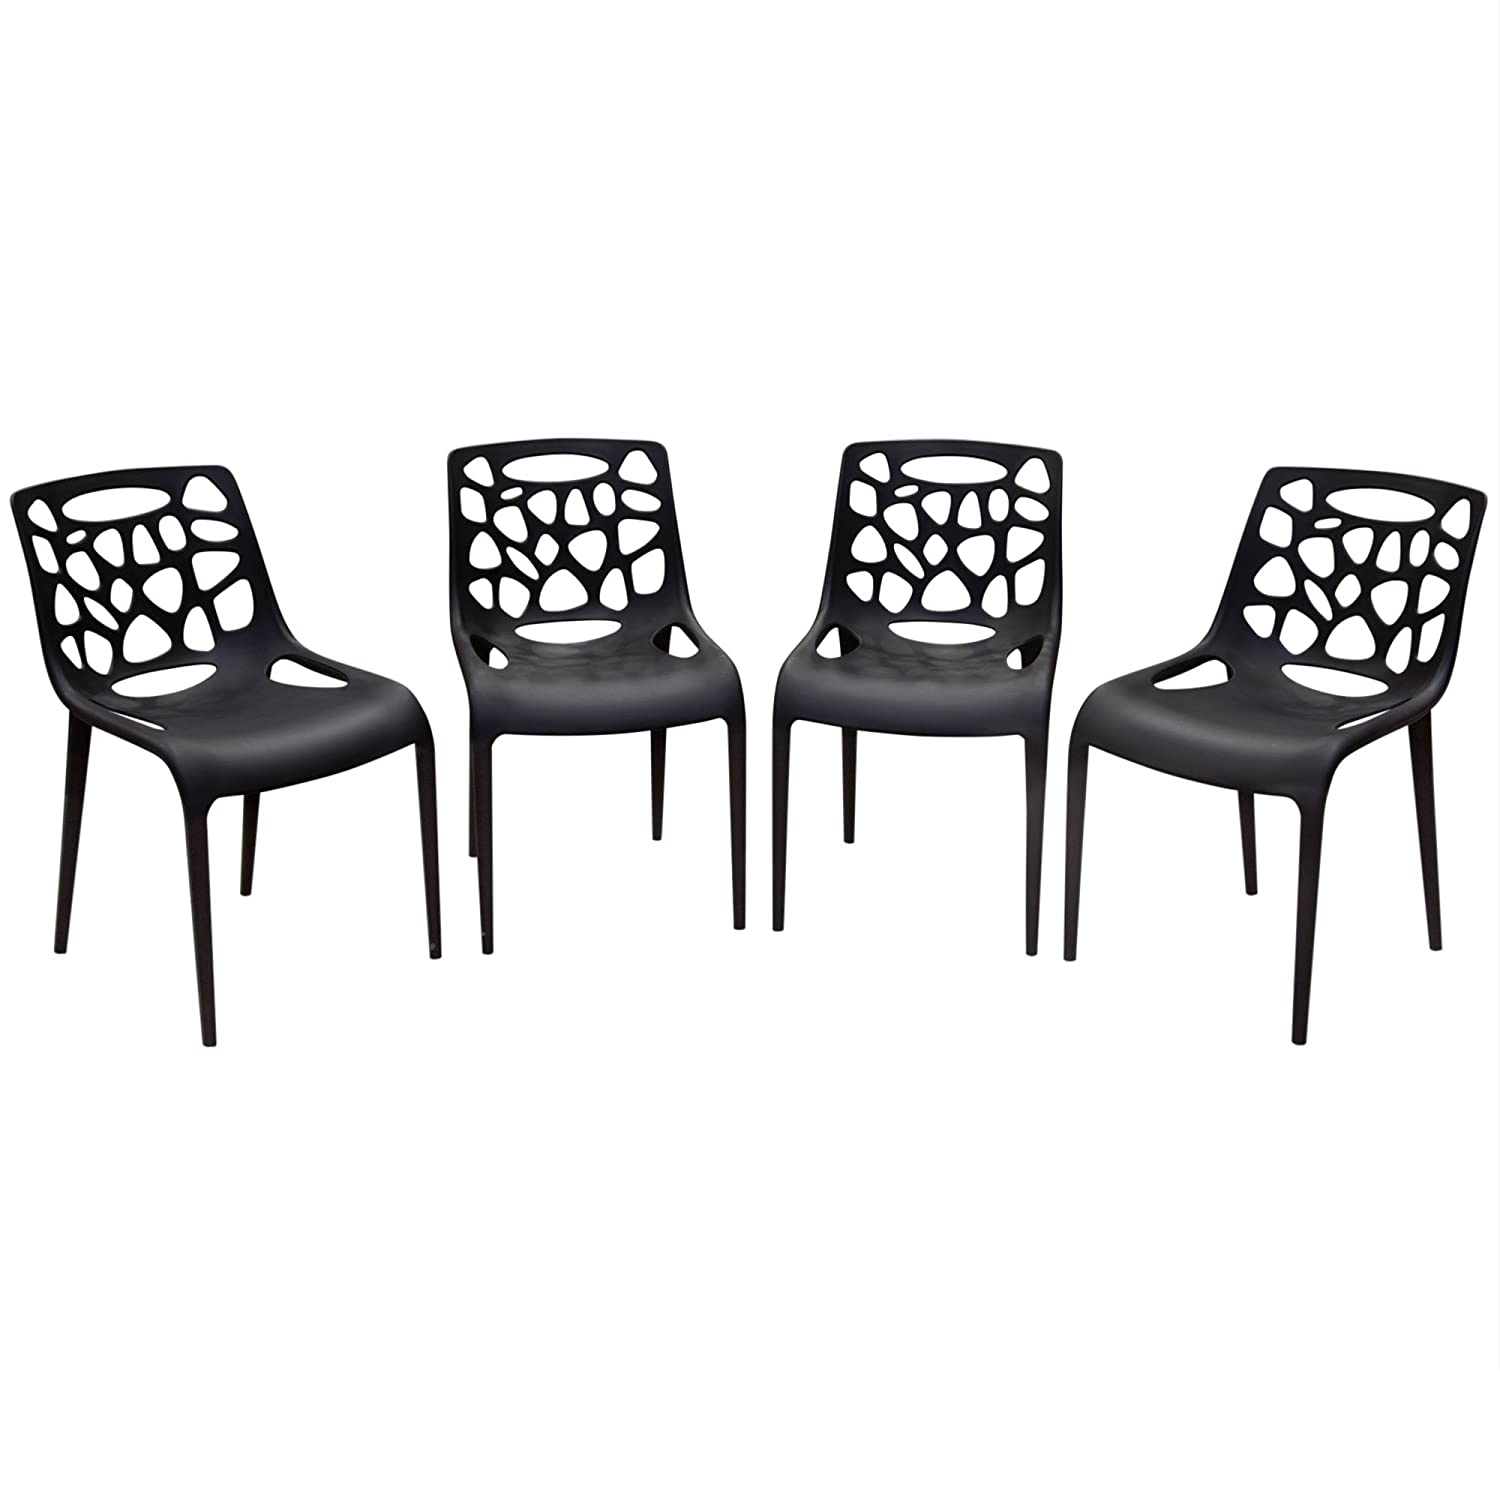 Magnificent Amazon Com Diamond Furniture Oceandcbl4Pk Ocean 4 Pack Gmtry Best Dining Table And Chair Ideas Images Gmtryco